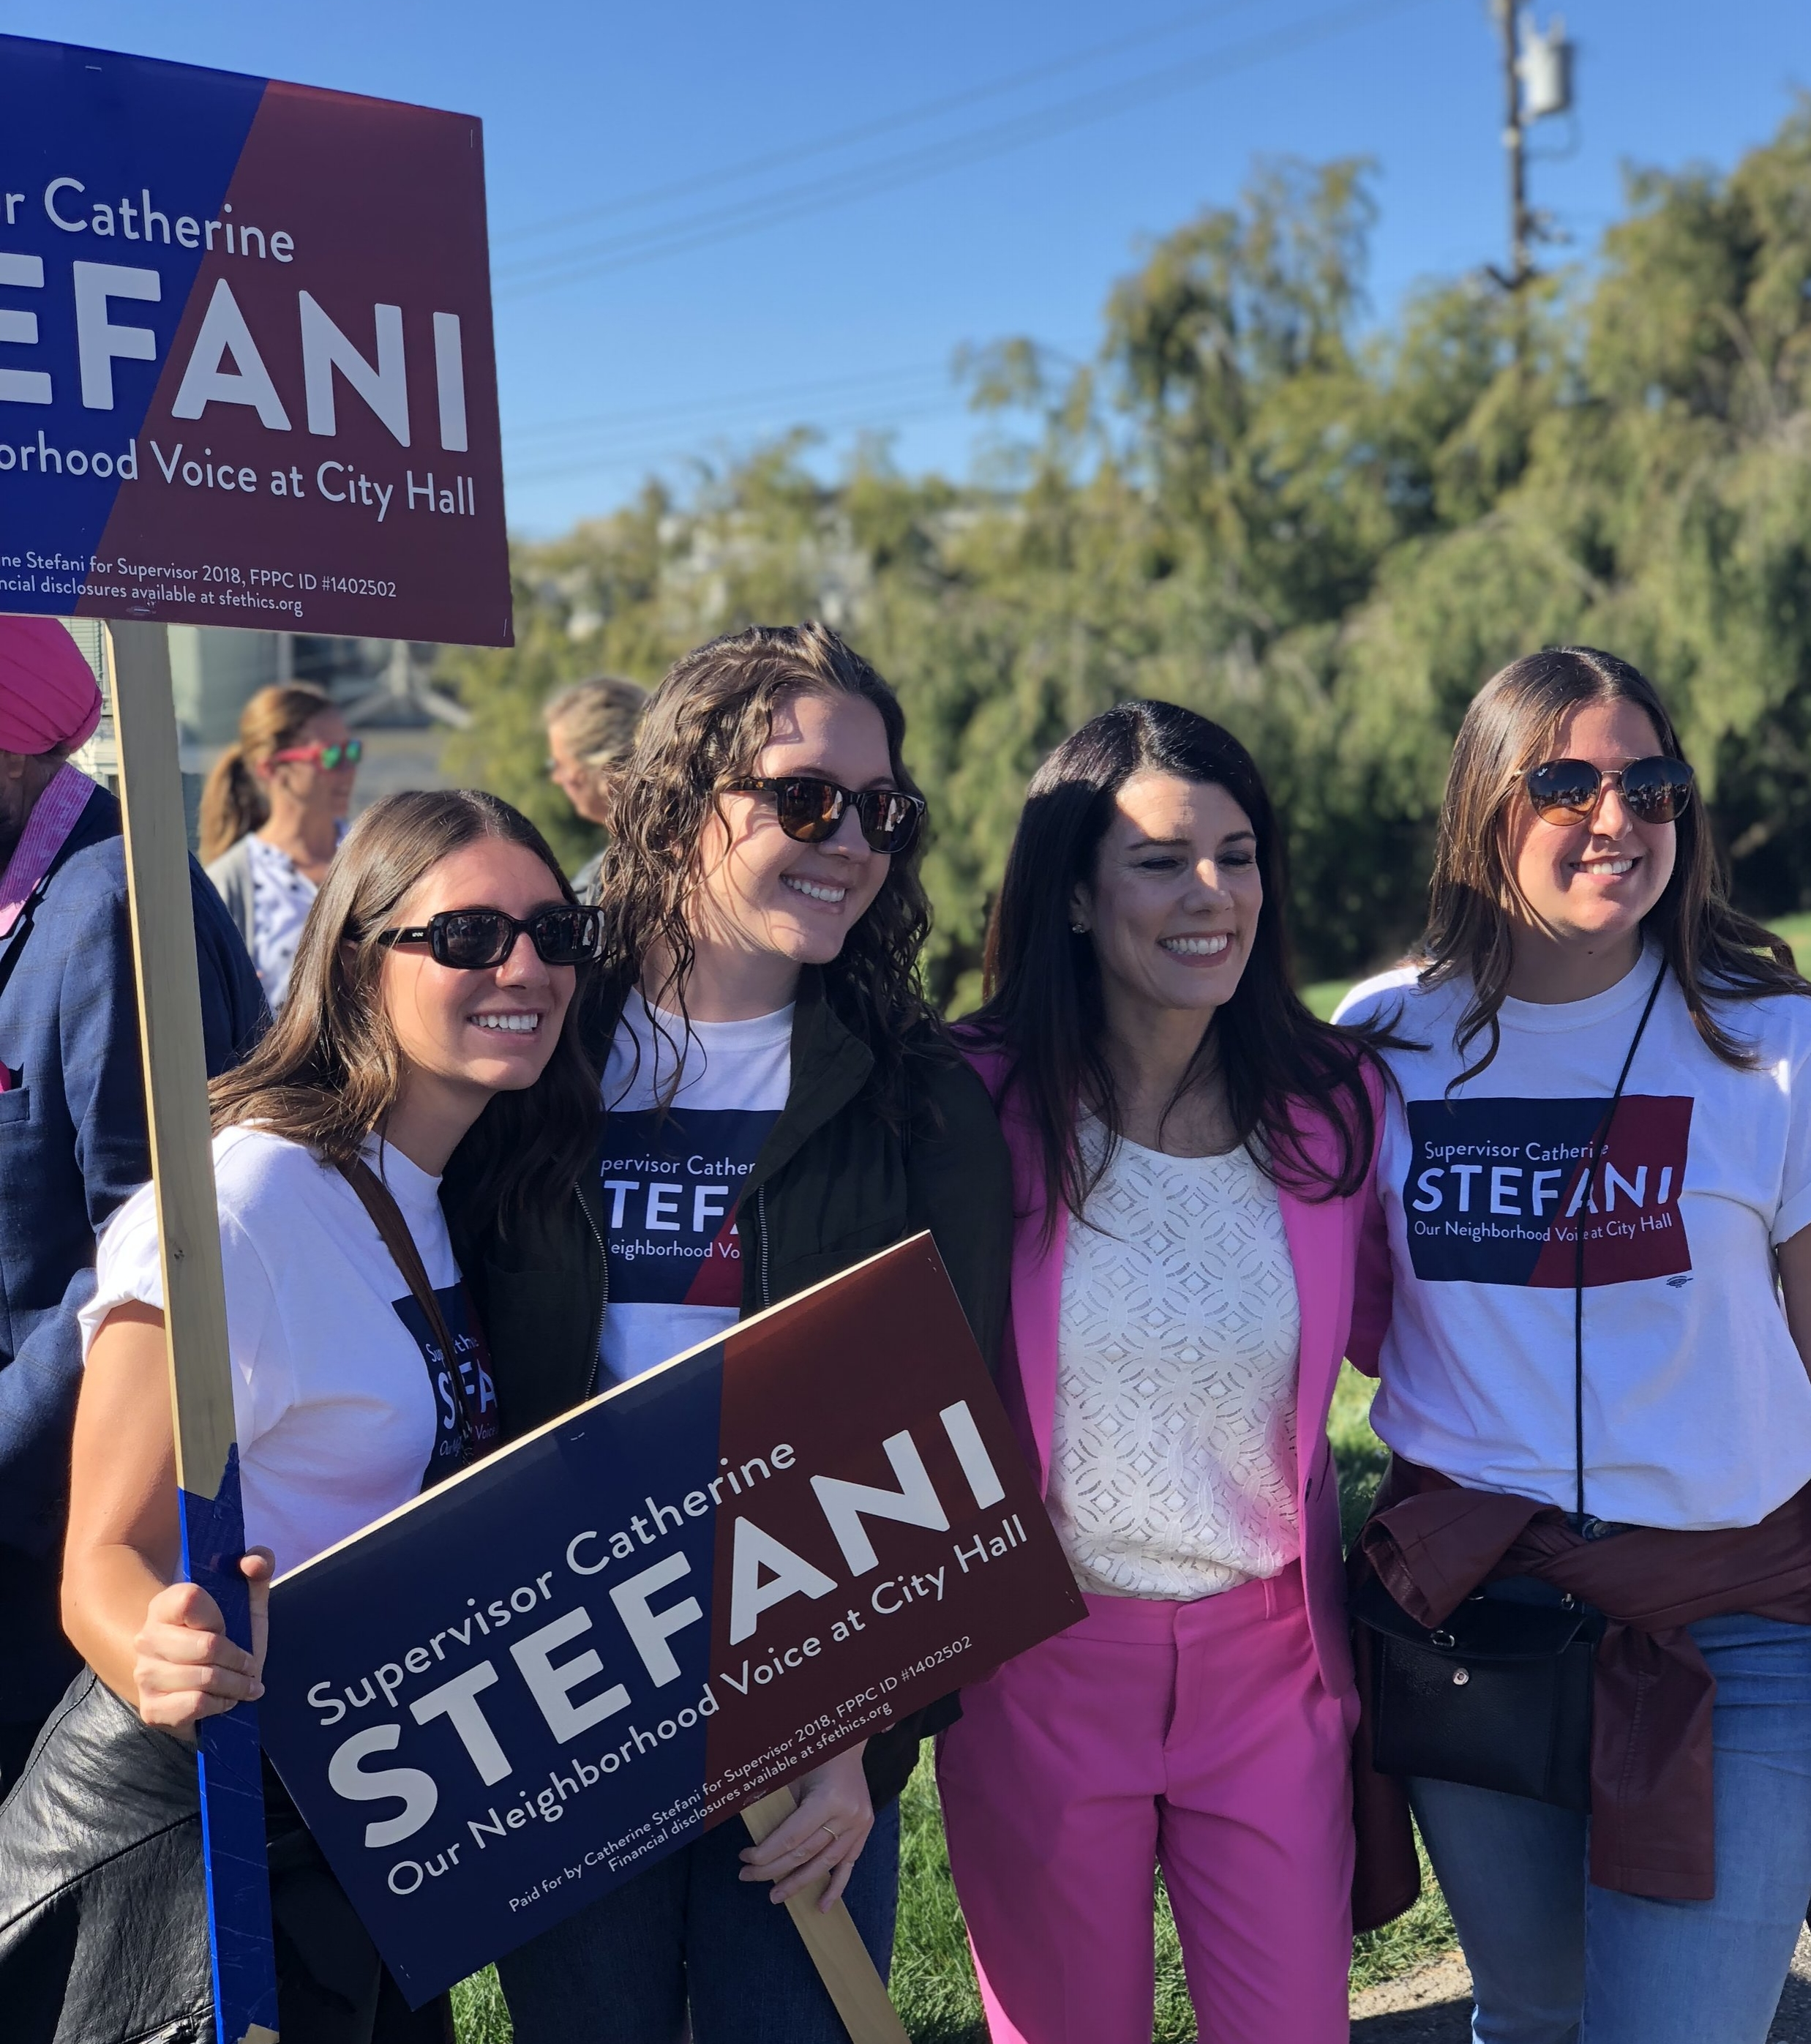 Supervisor Stefani with supporters